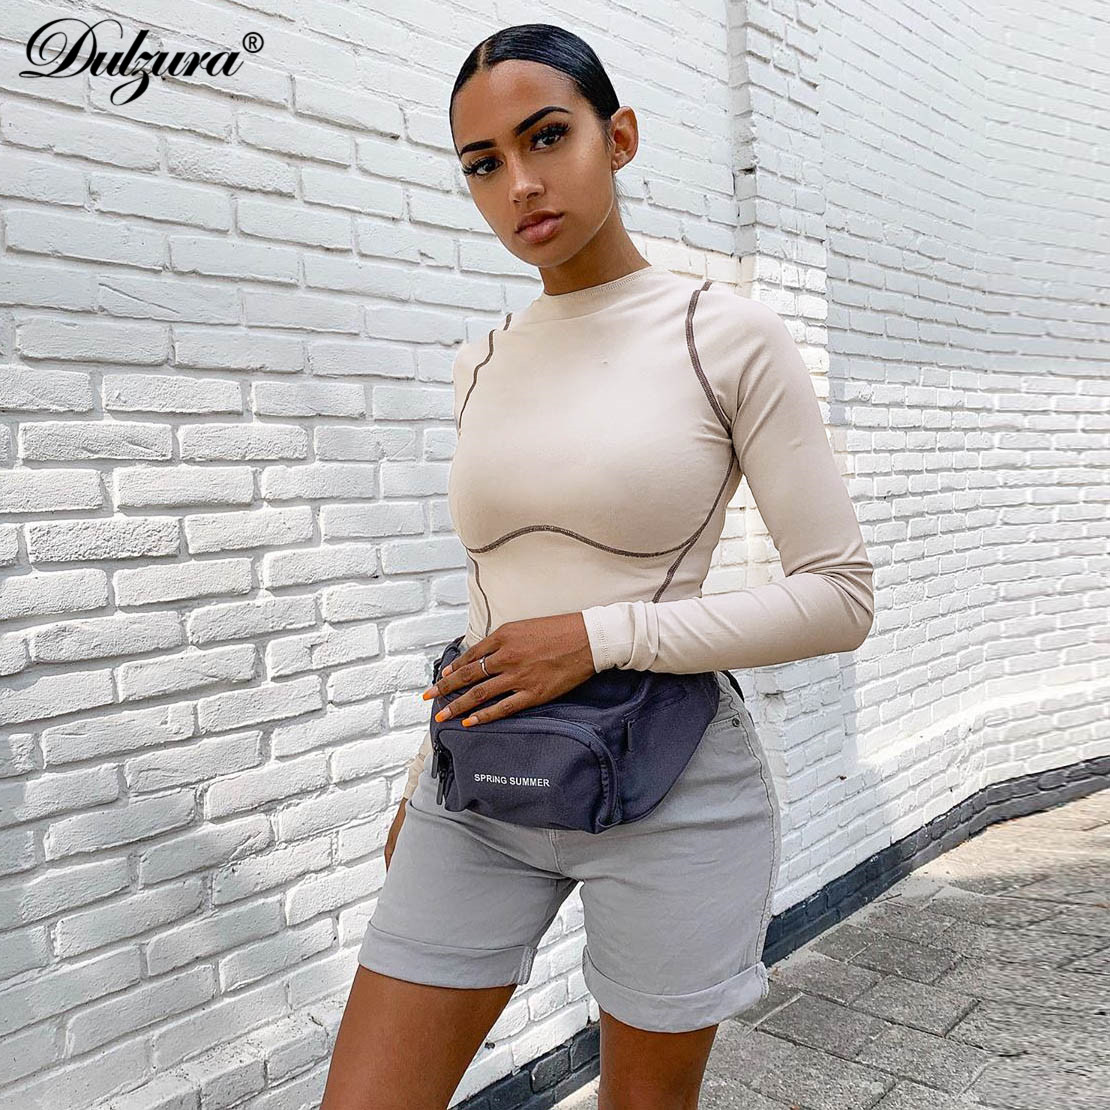 Dulzura 2019 Autumn Winter Women Bodysuit Long Sleeve Bodycon Sexy Romper Gloves Streetwear Festival Clothing One Piece Body